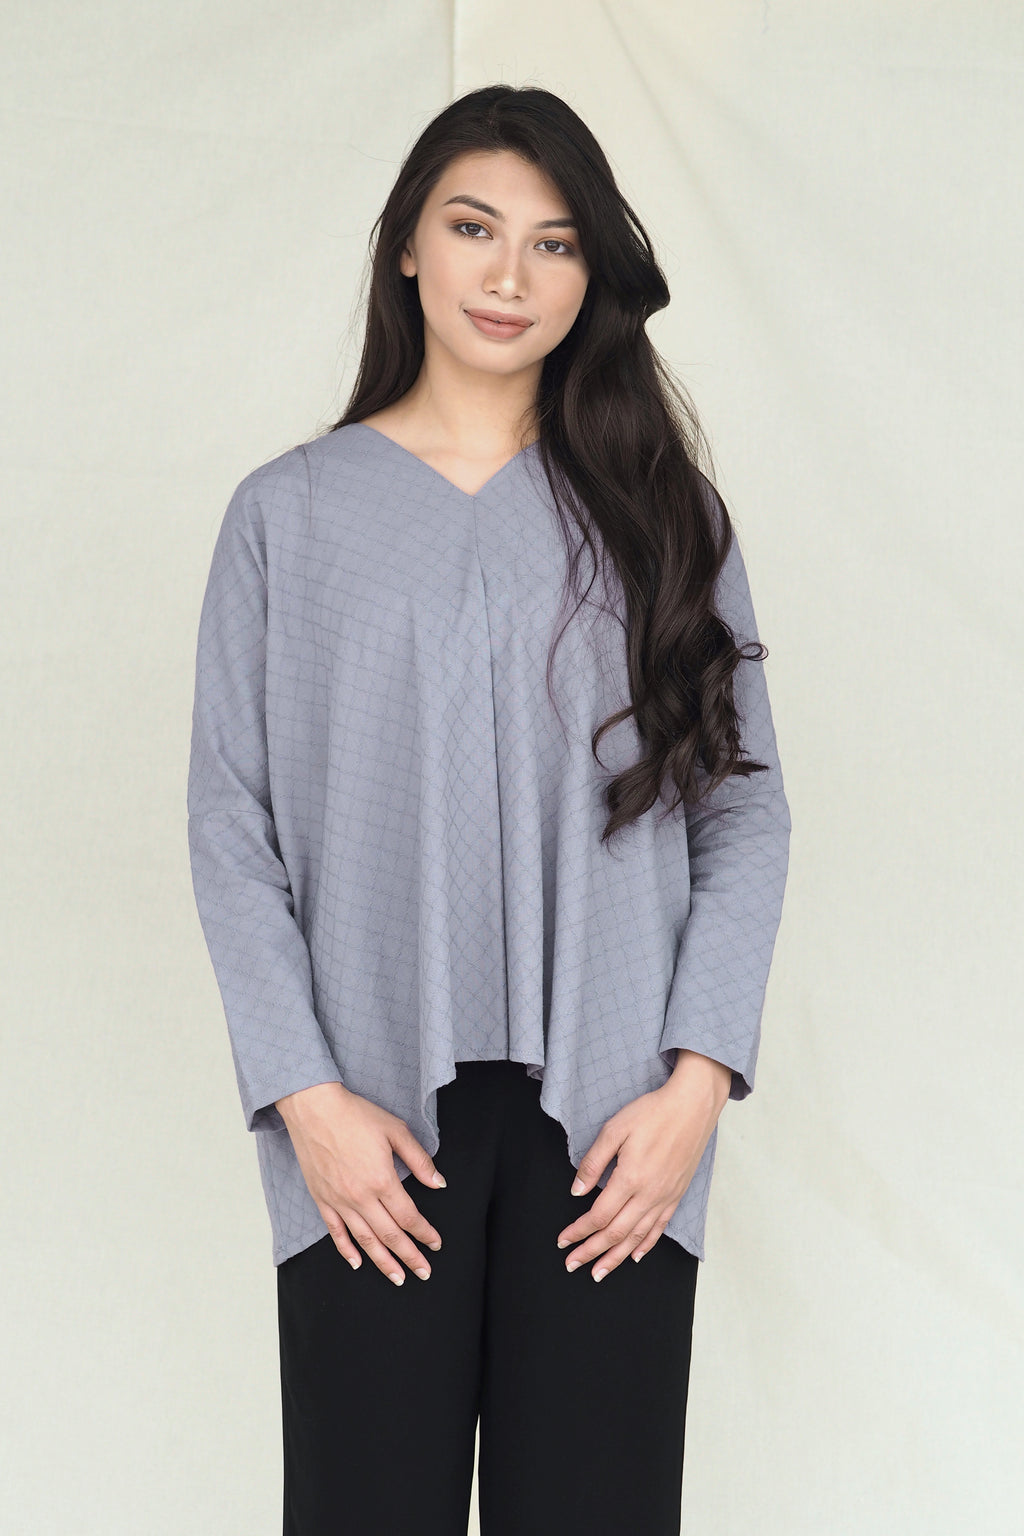 Mawar Plain Top Grey